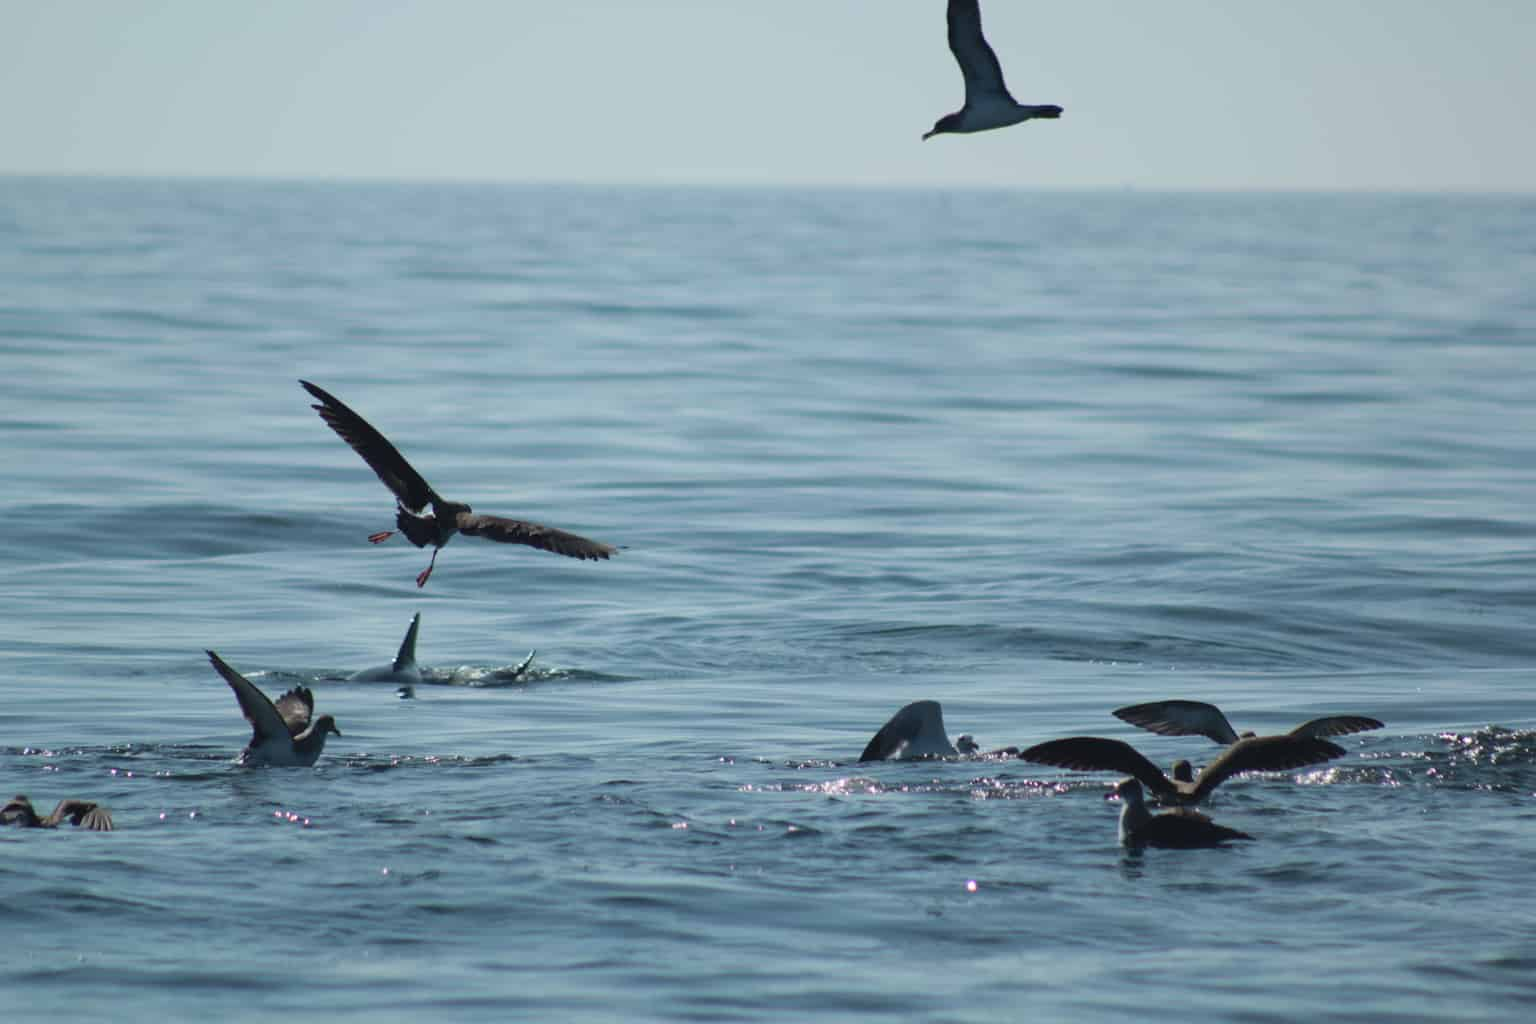 Group of seabirds feeding along with dolphins in the Algarve.